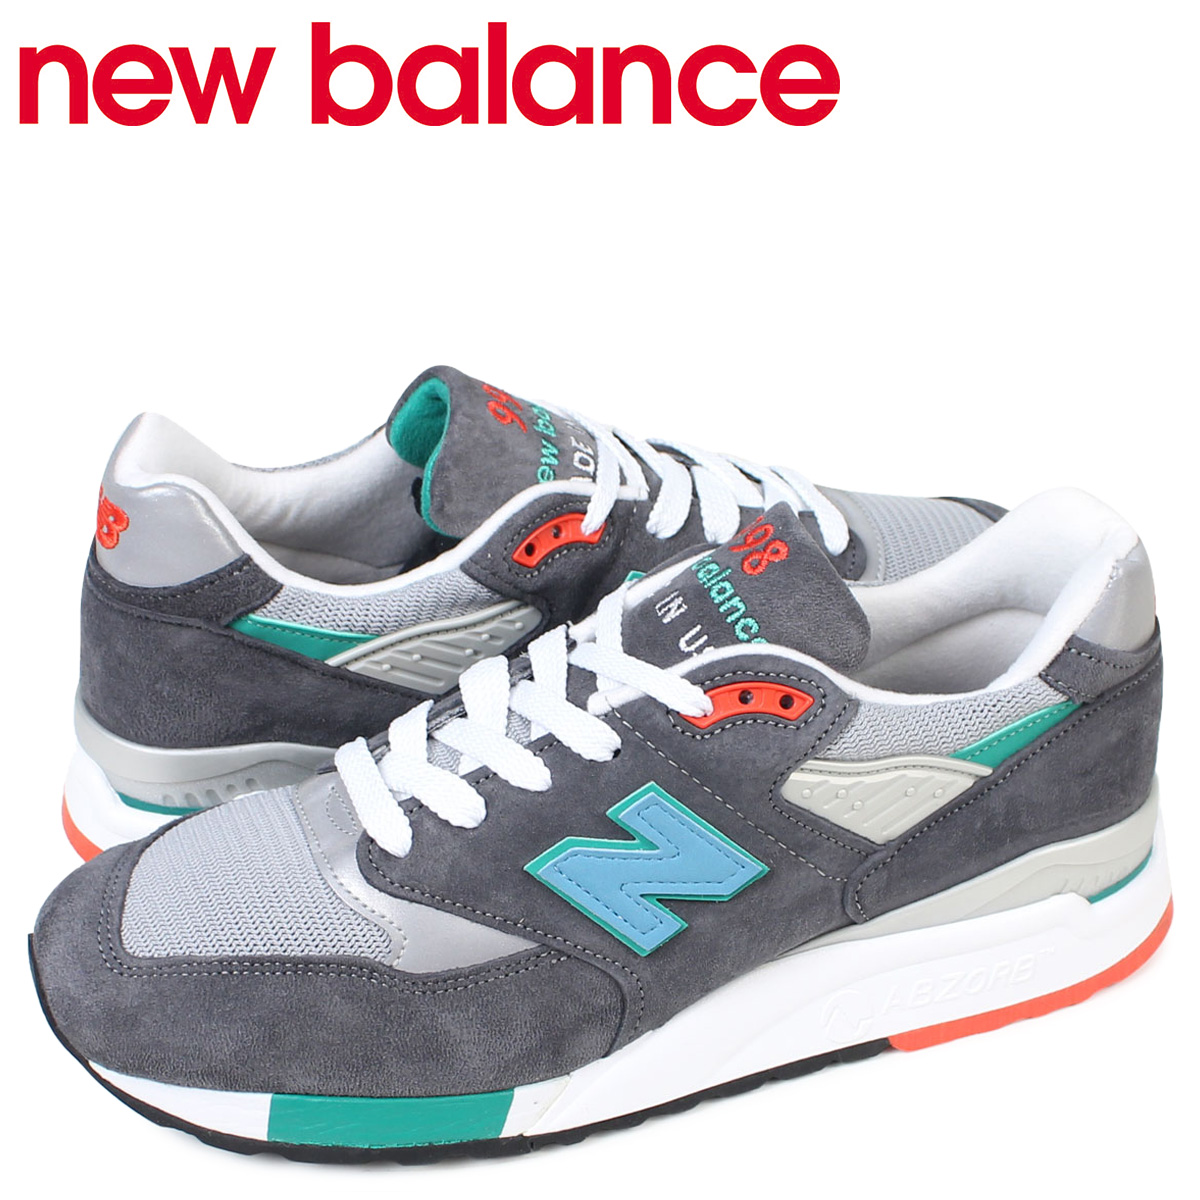 separation shoes 940d8 31582 new balance 998 men's New Balance sneakers M998CSRR D Wise MADE IN USA  shoes gray